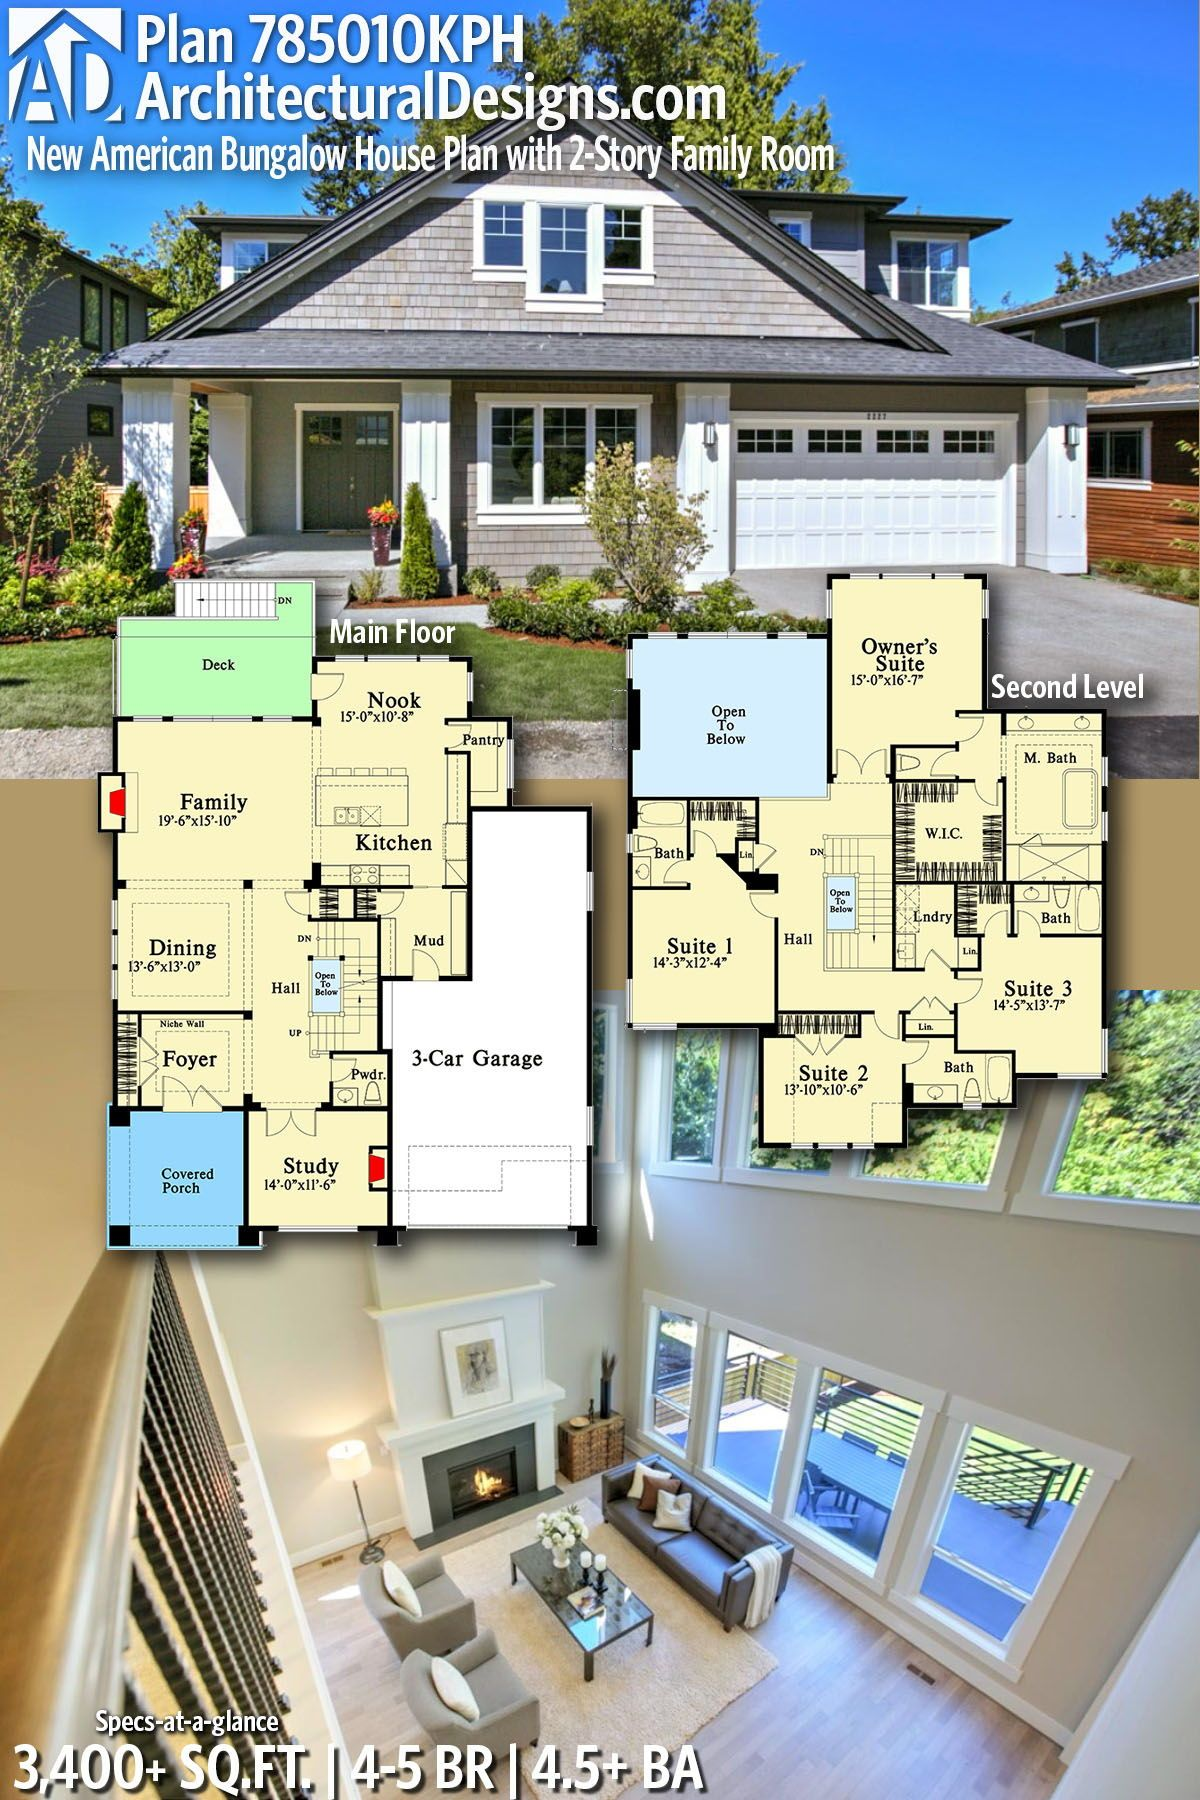 Plan 785010kph New American Bungalow House Plan With 2 Story Family Room Bungalow House Plans House Blueprints Bungalow Style House Plans